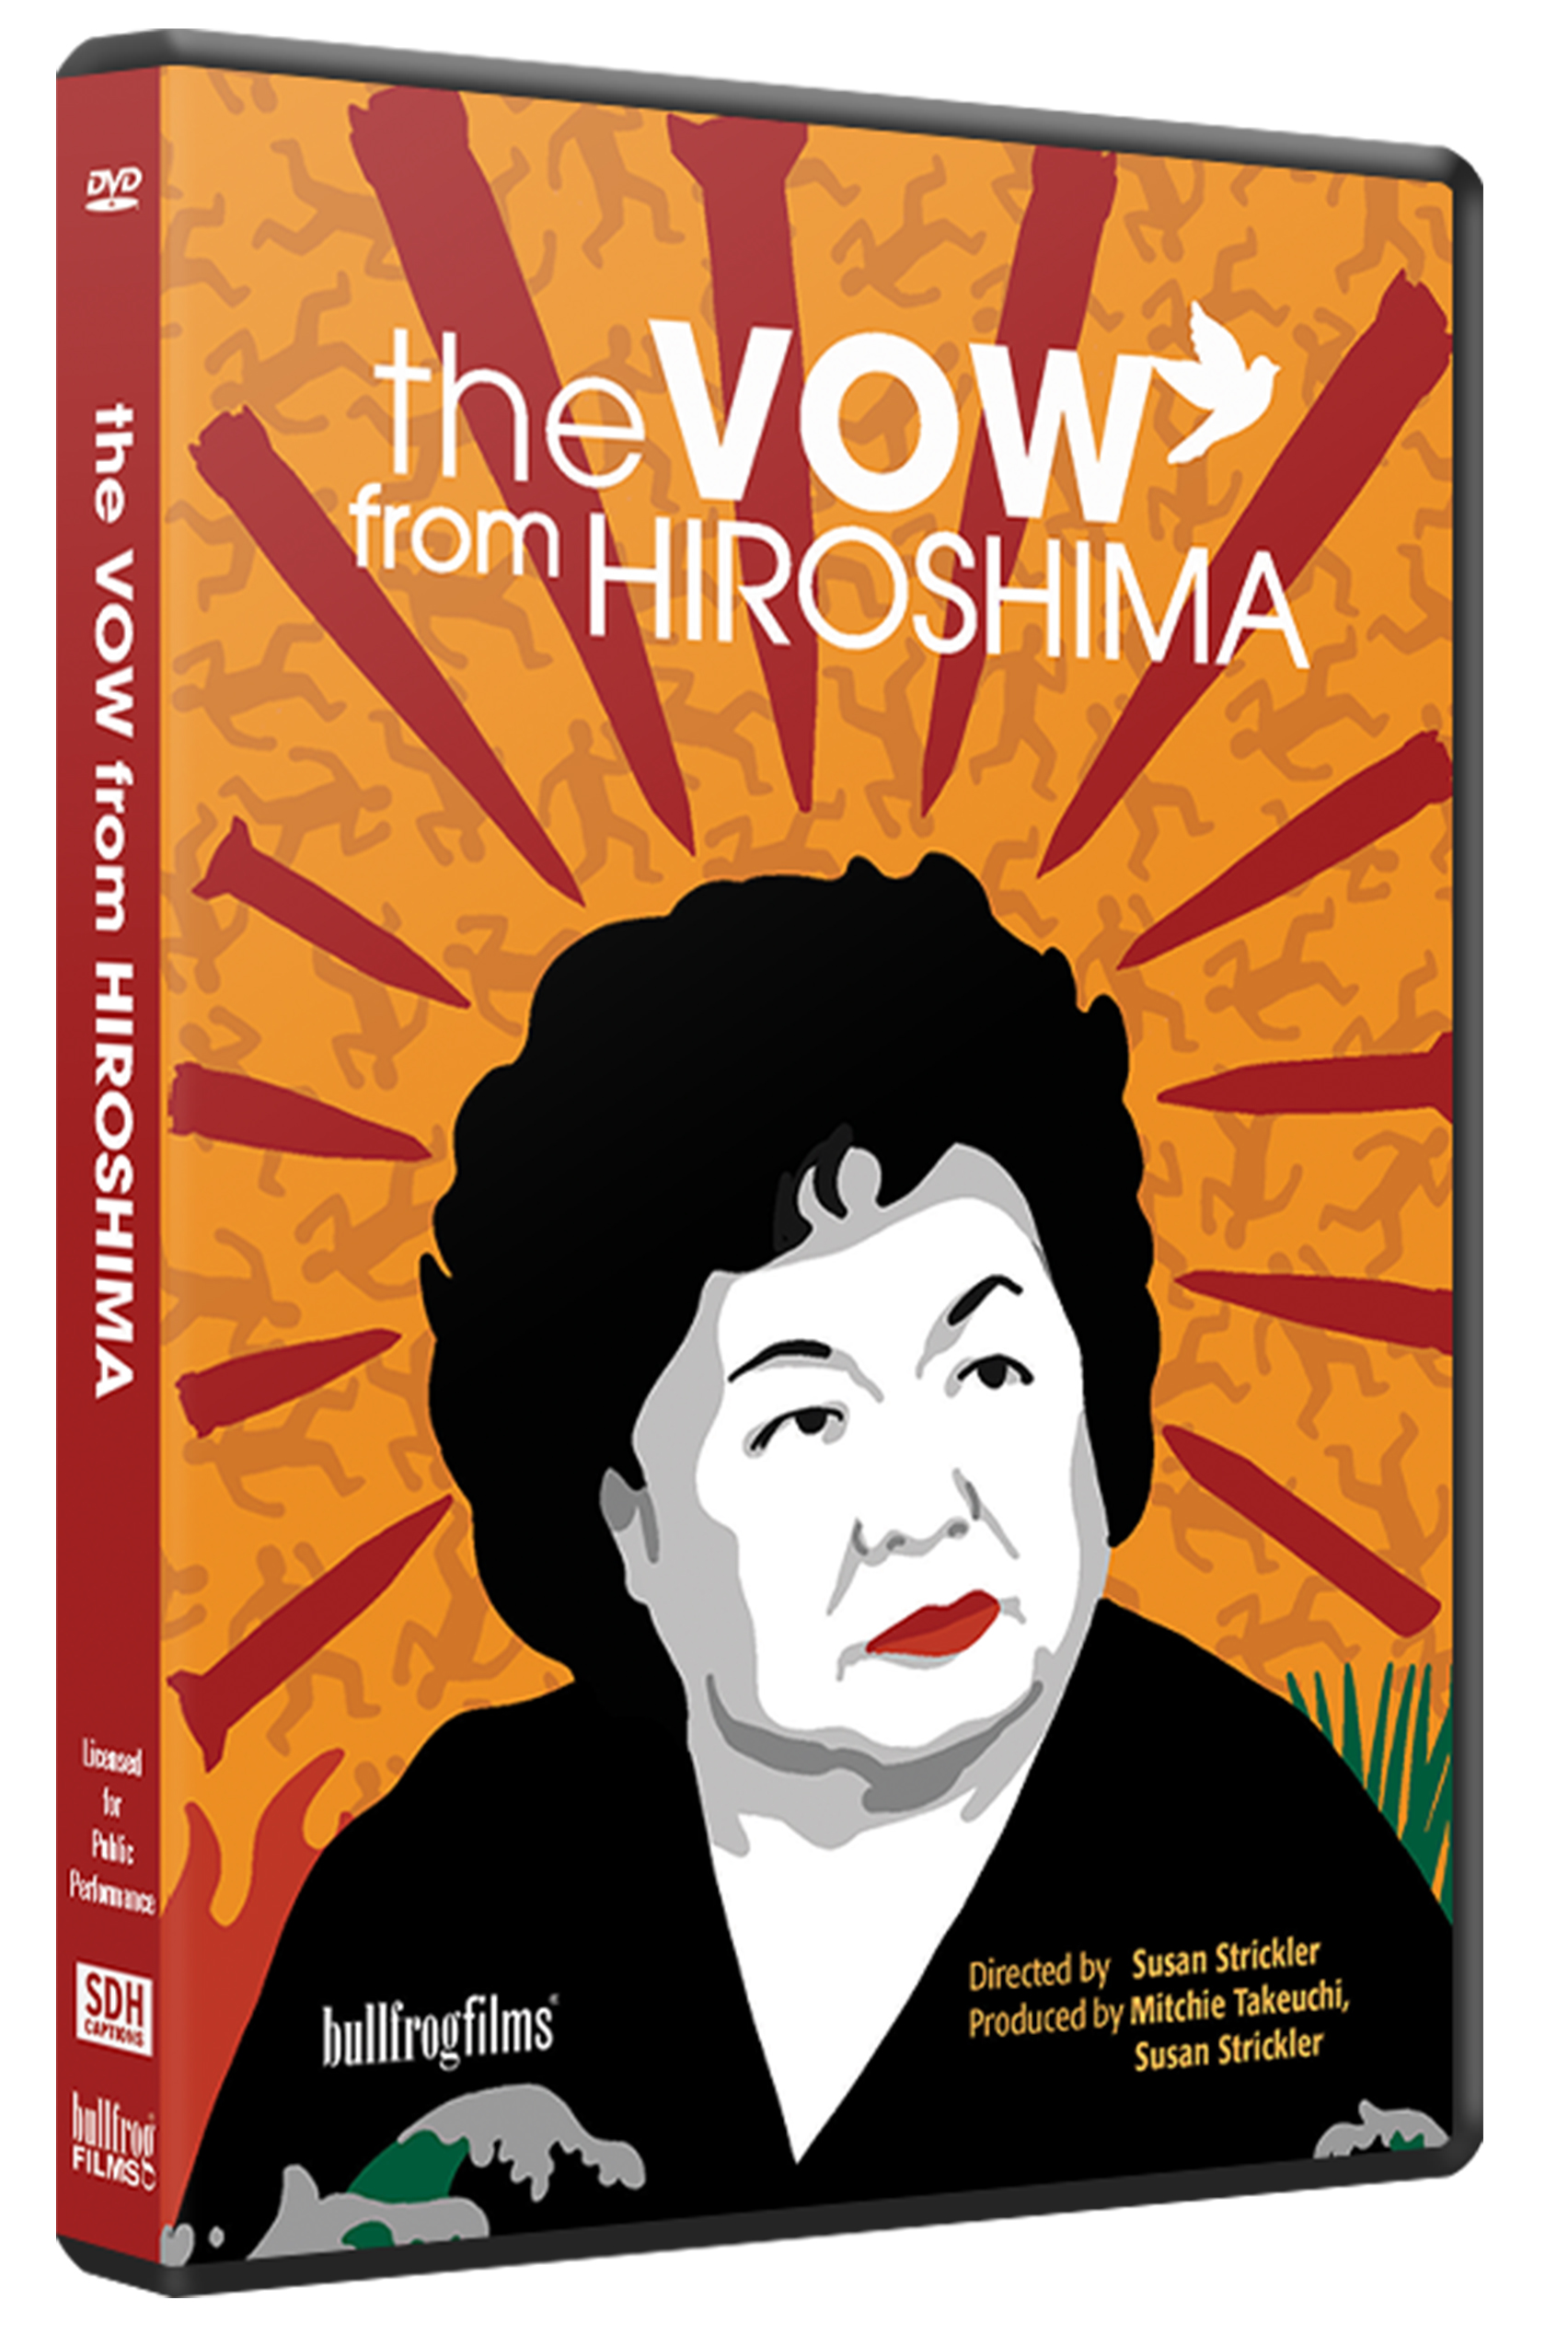 THE VOW FROM HIROSHIMA